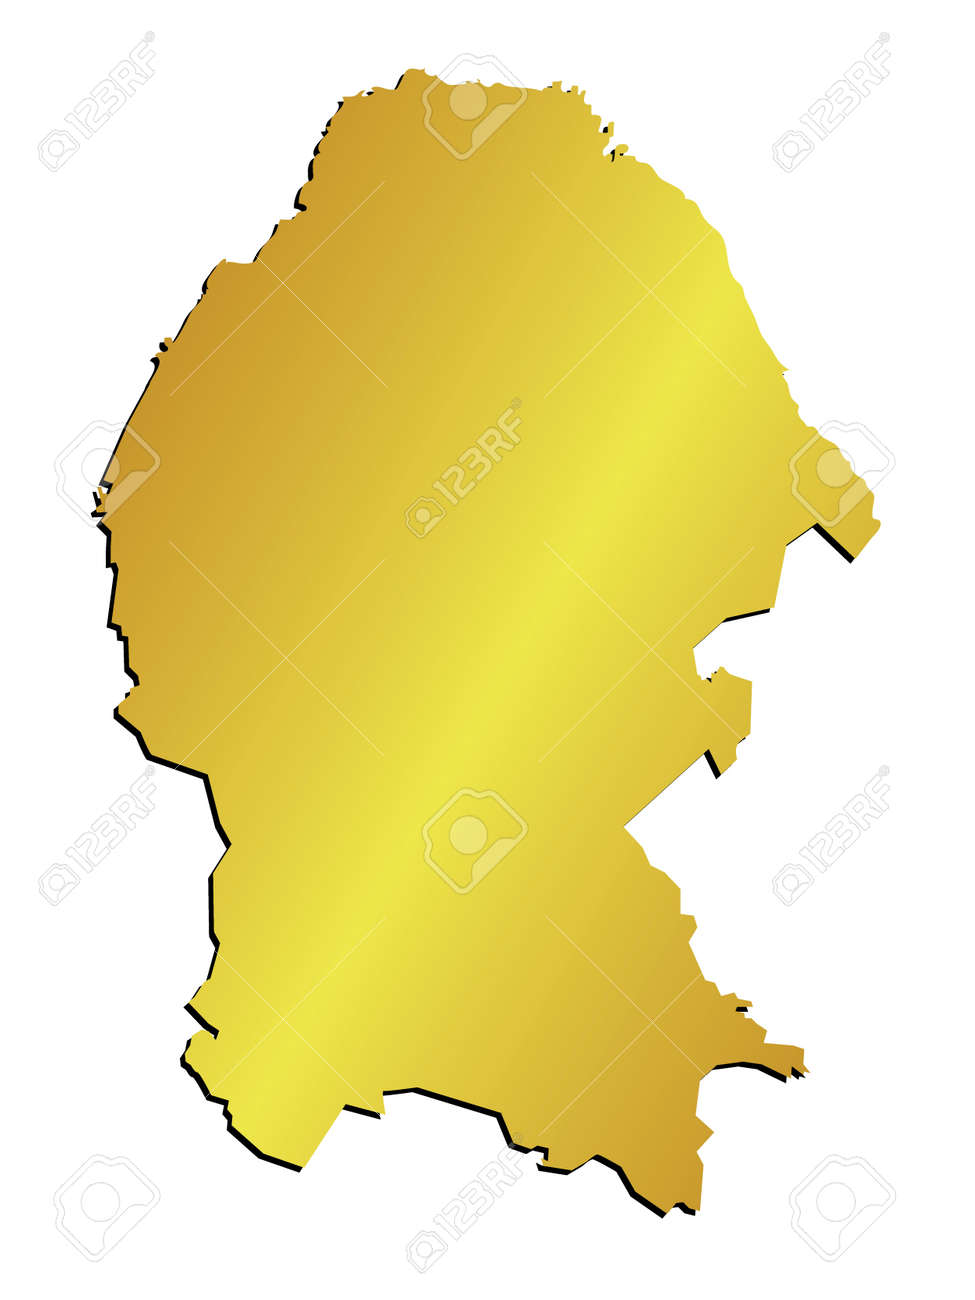 3D Coahuila Mexico State Map Vector Gold Royalty Free Cliparts